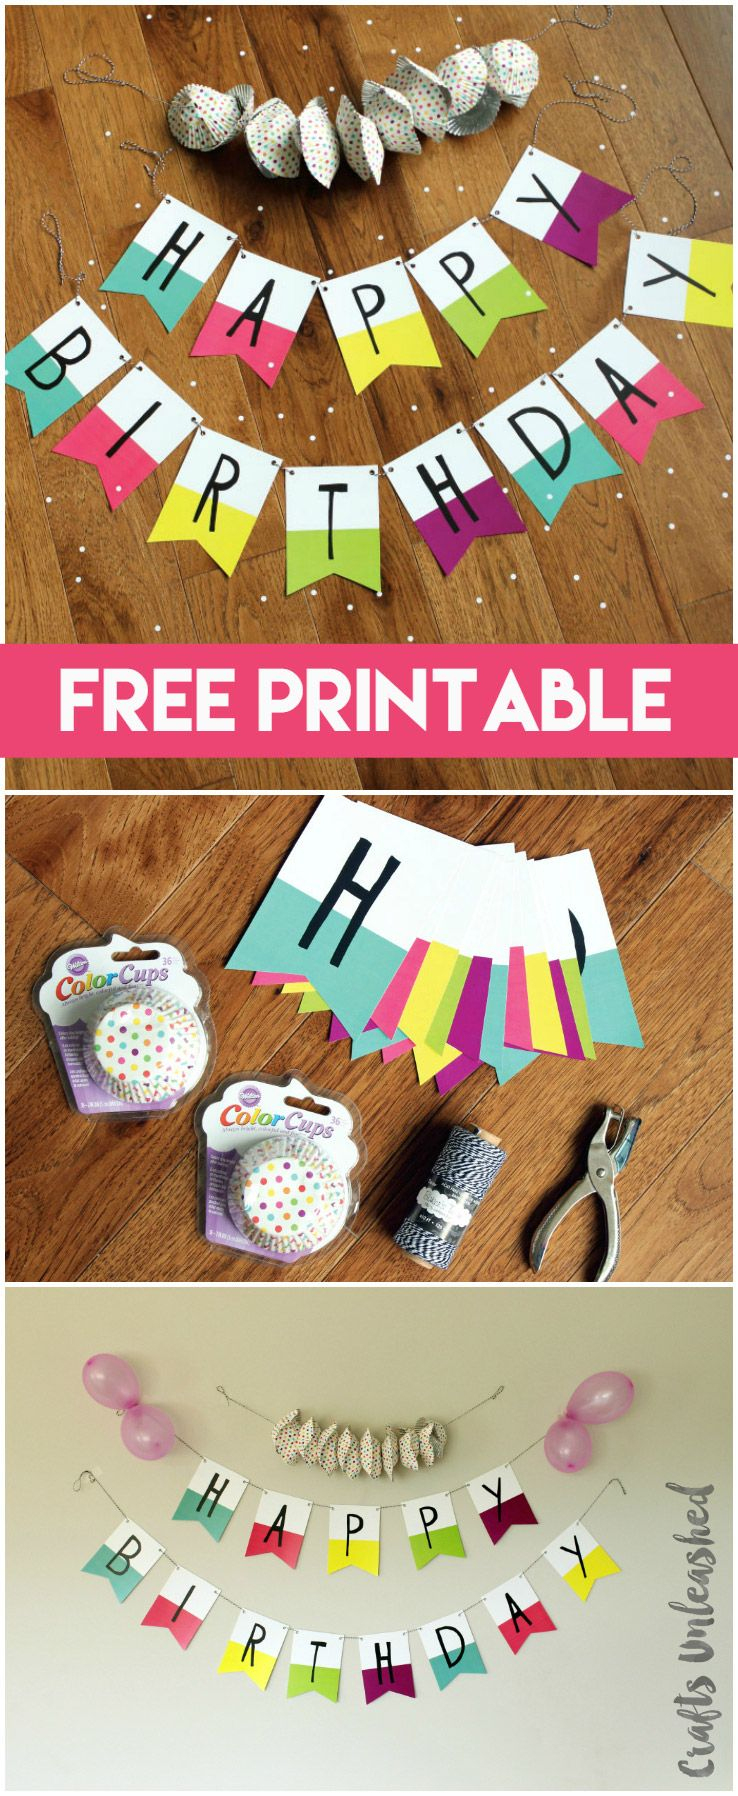 Free Printable Banner: Happy Birthday Pennants - Consumer Crafts | A - Diy Birthday Banner Free Printable